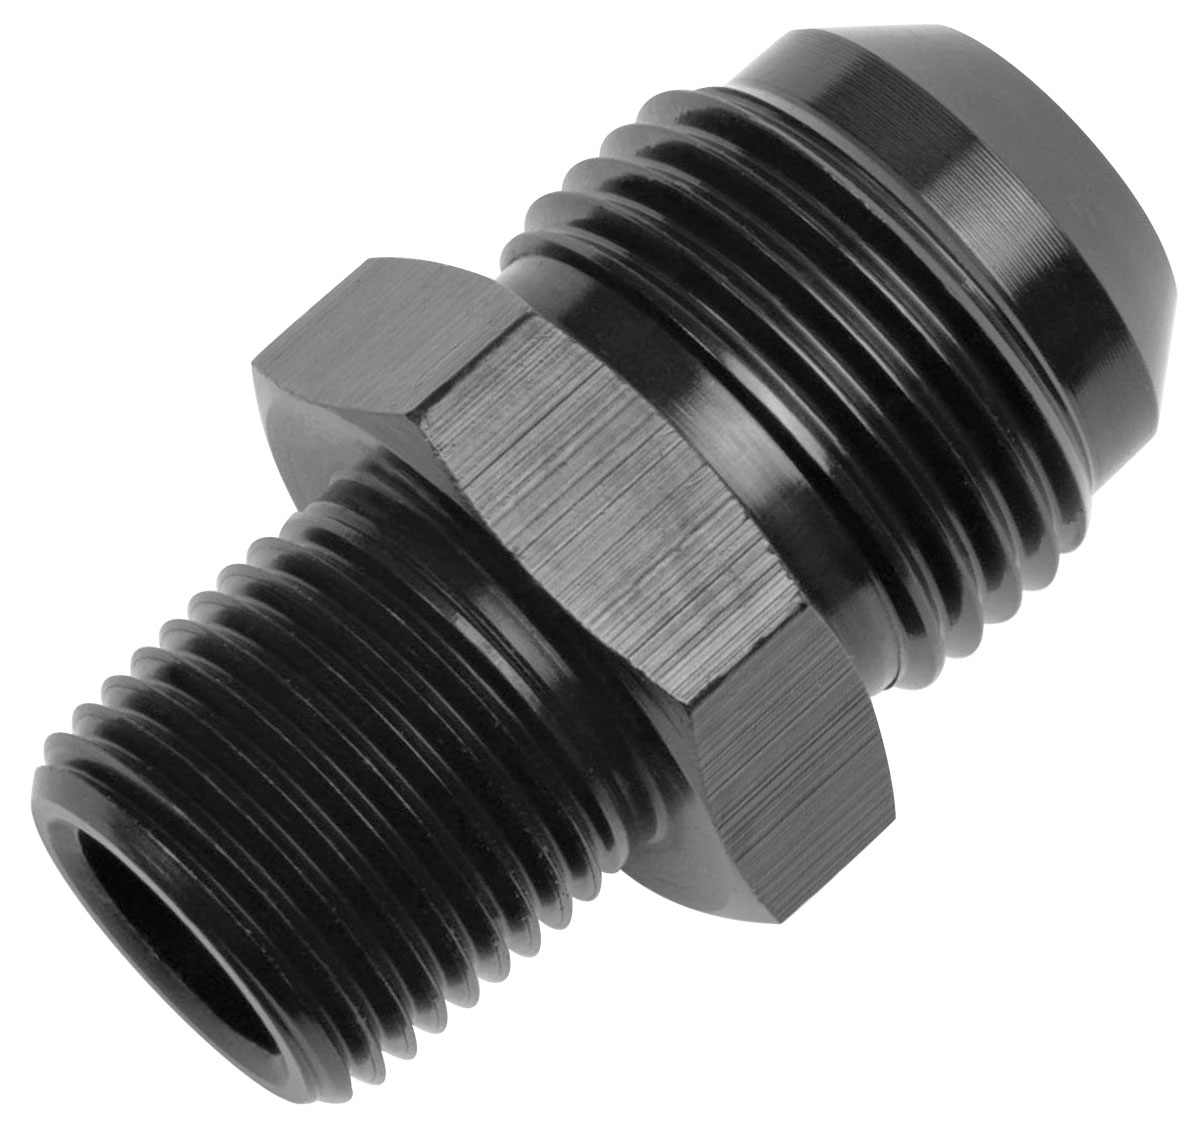 Adapter, AN to NPT, Russell, -8AN to 1/4